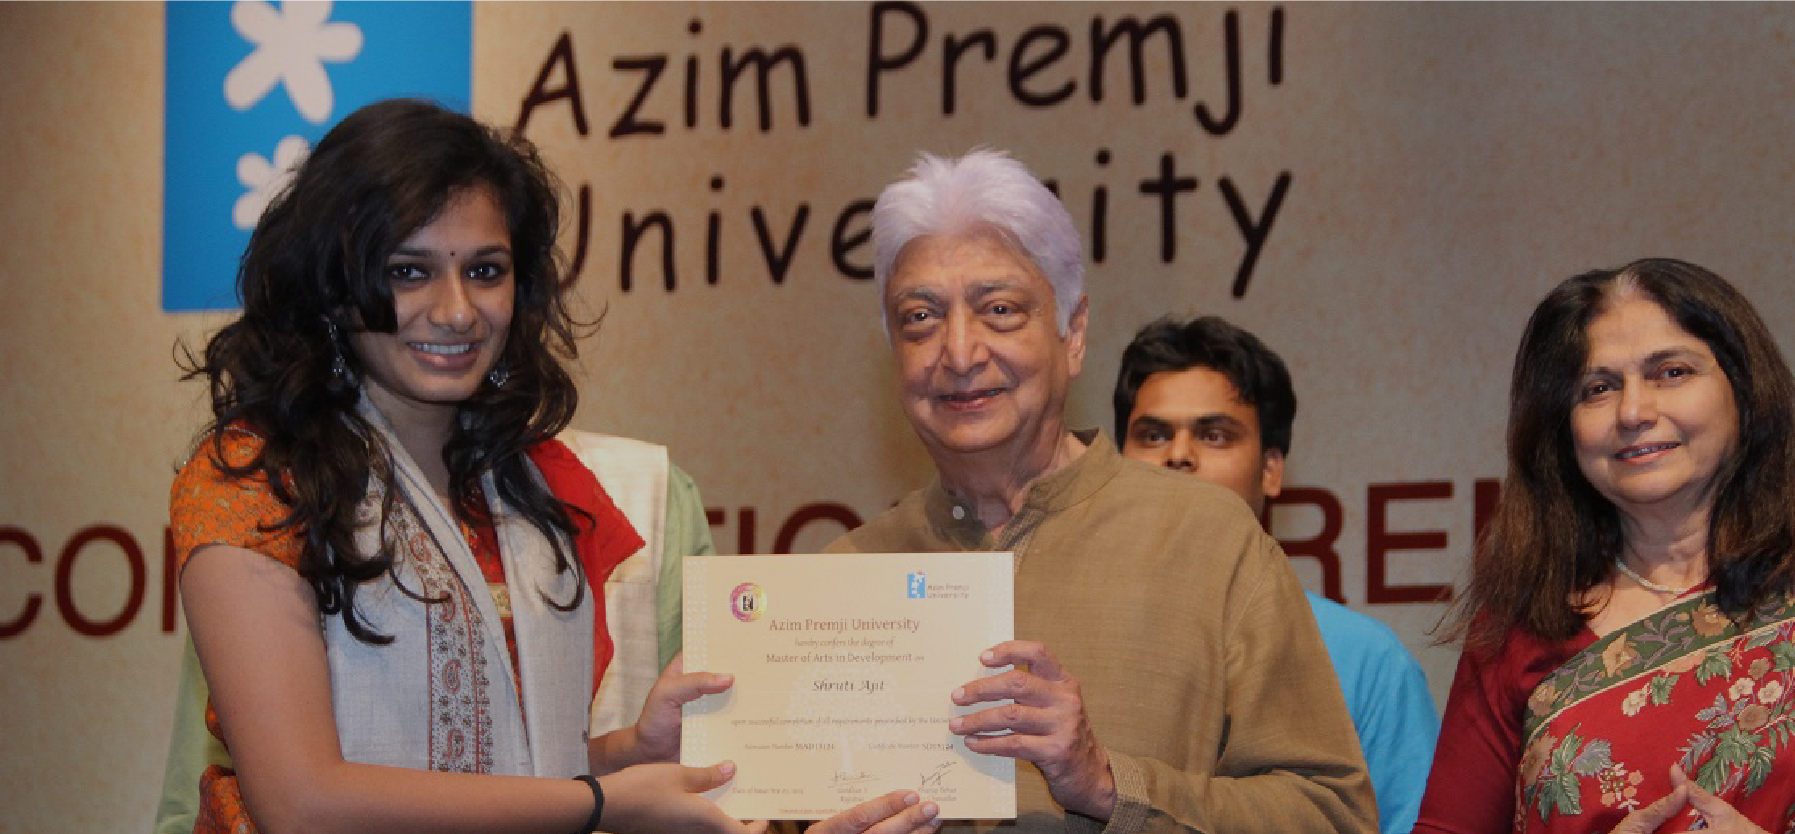 Azim Premji - Top entrepreneurs of the world